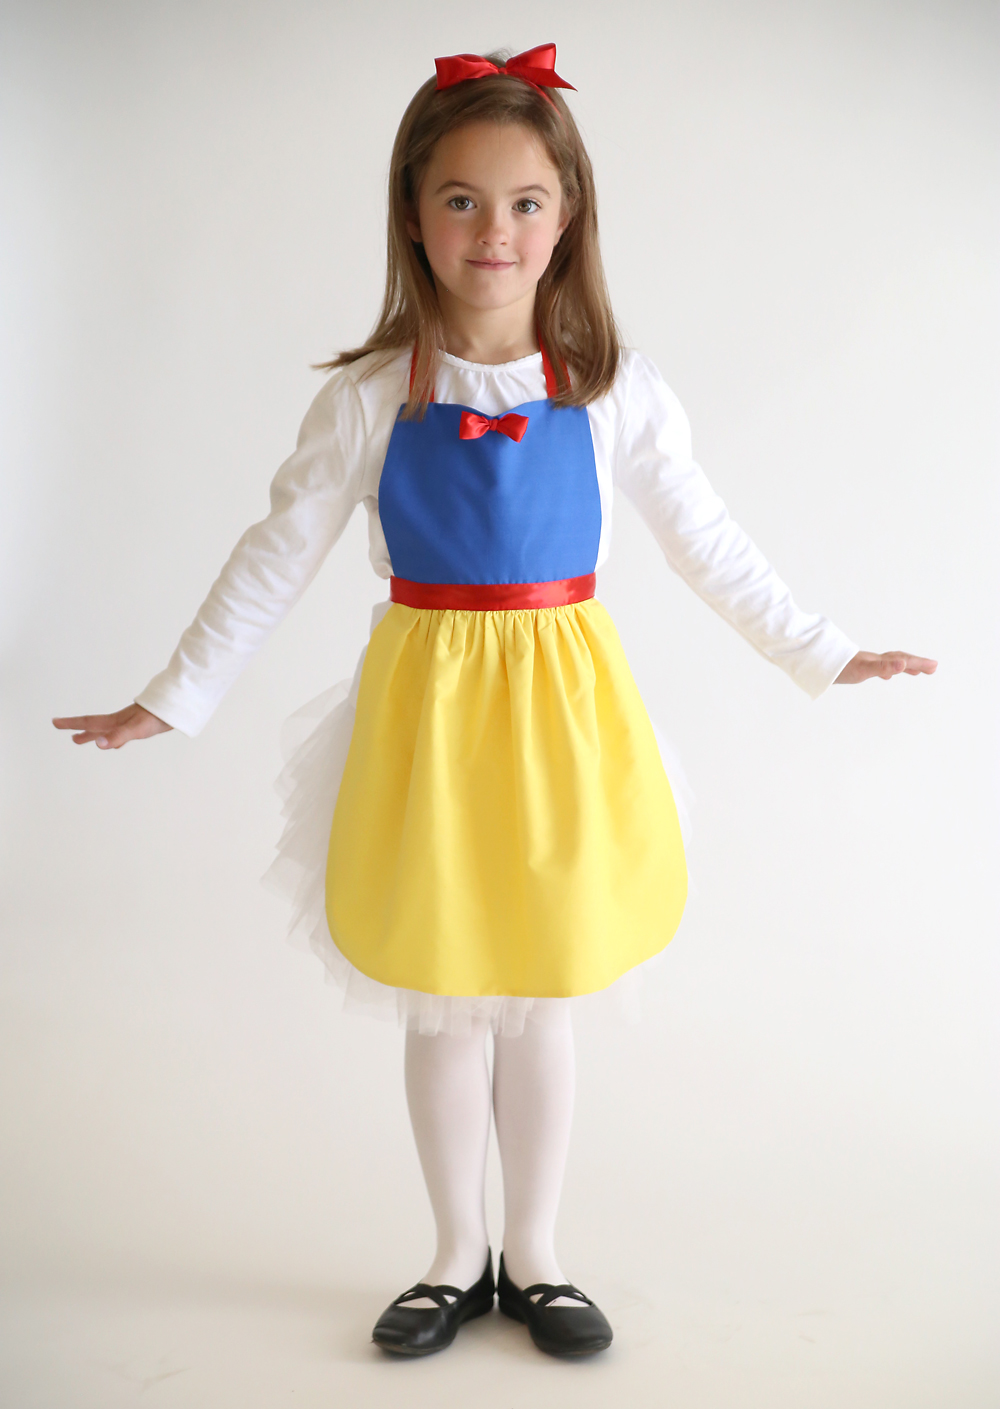 So adorable! Get the free PDF sewing pattern for this easy to make Snow White princess dress up apron in sizes 2-8 to fit any little girl! Easy DIY Snow White costume or dress up. Great handmade Christmas gift idea. More princess dress up apron patterns on this site too